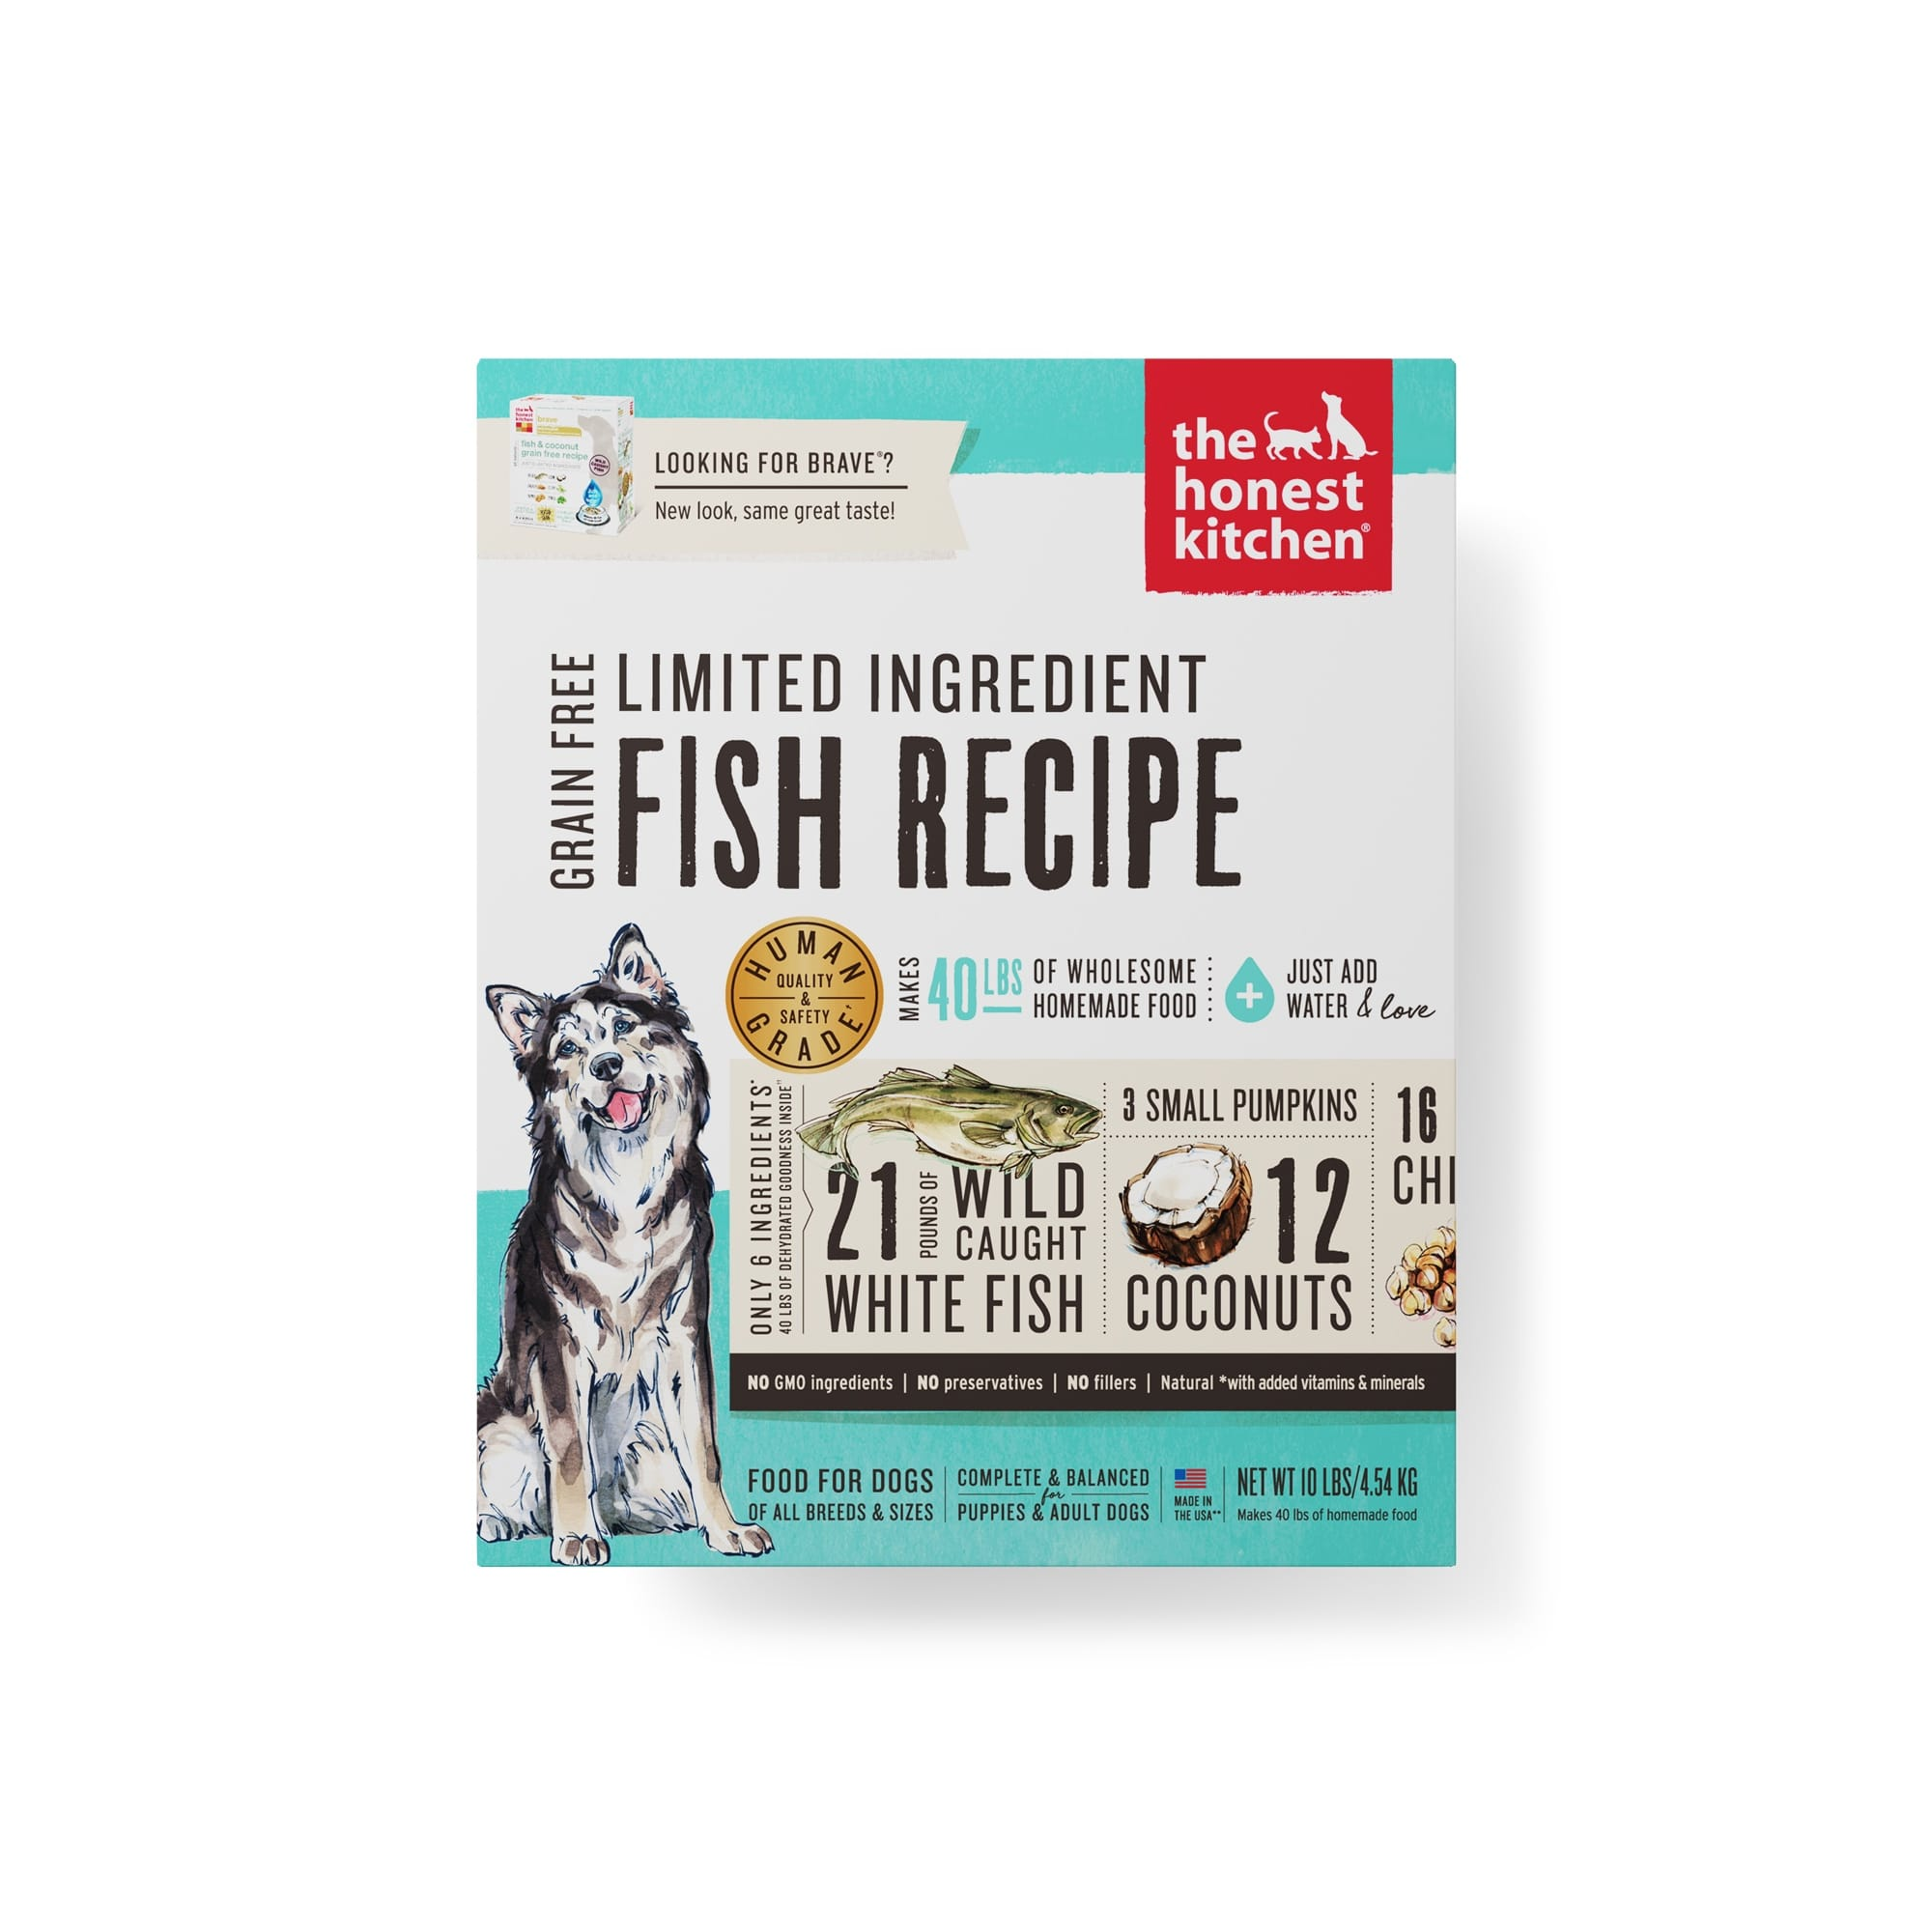 DEHYDRATED-LIMITED-INGREDIENT-FISH